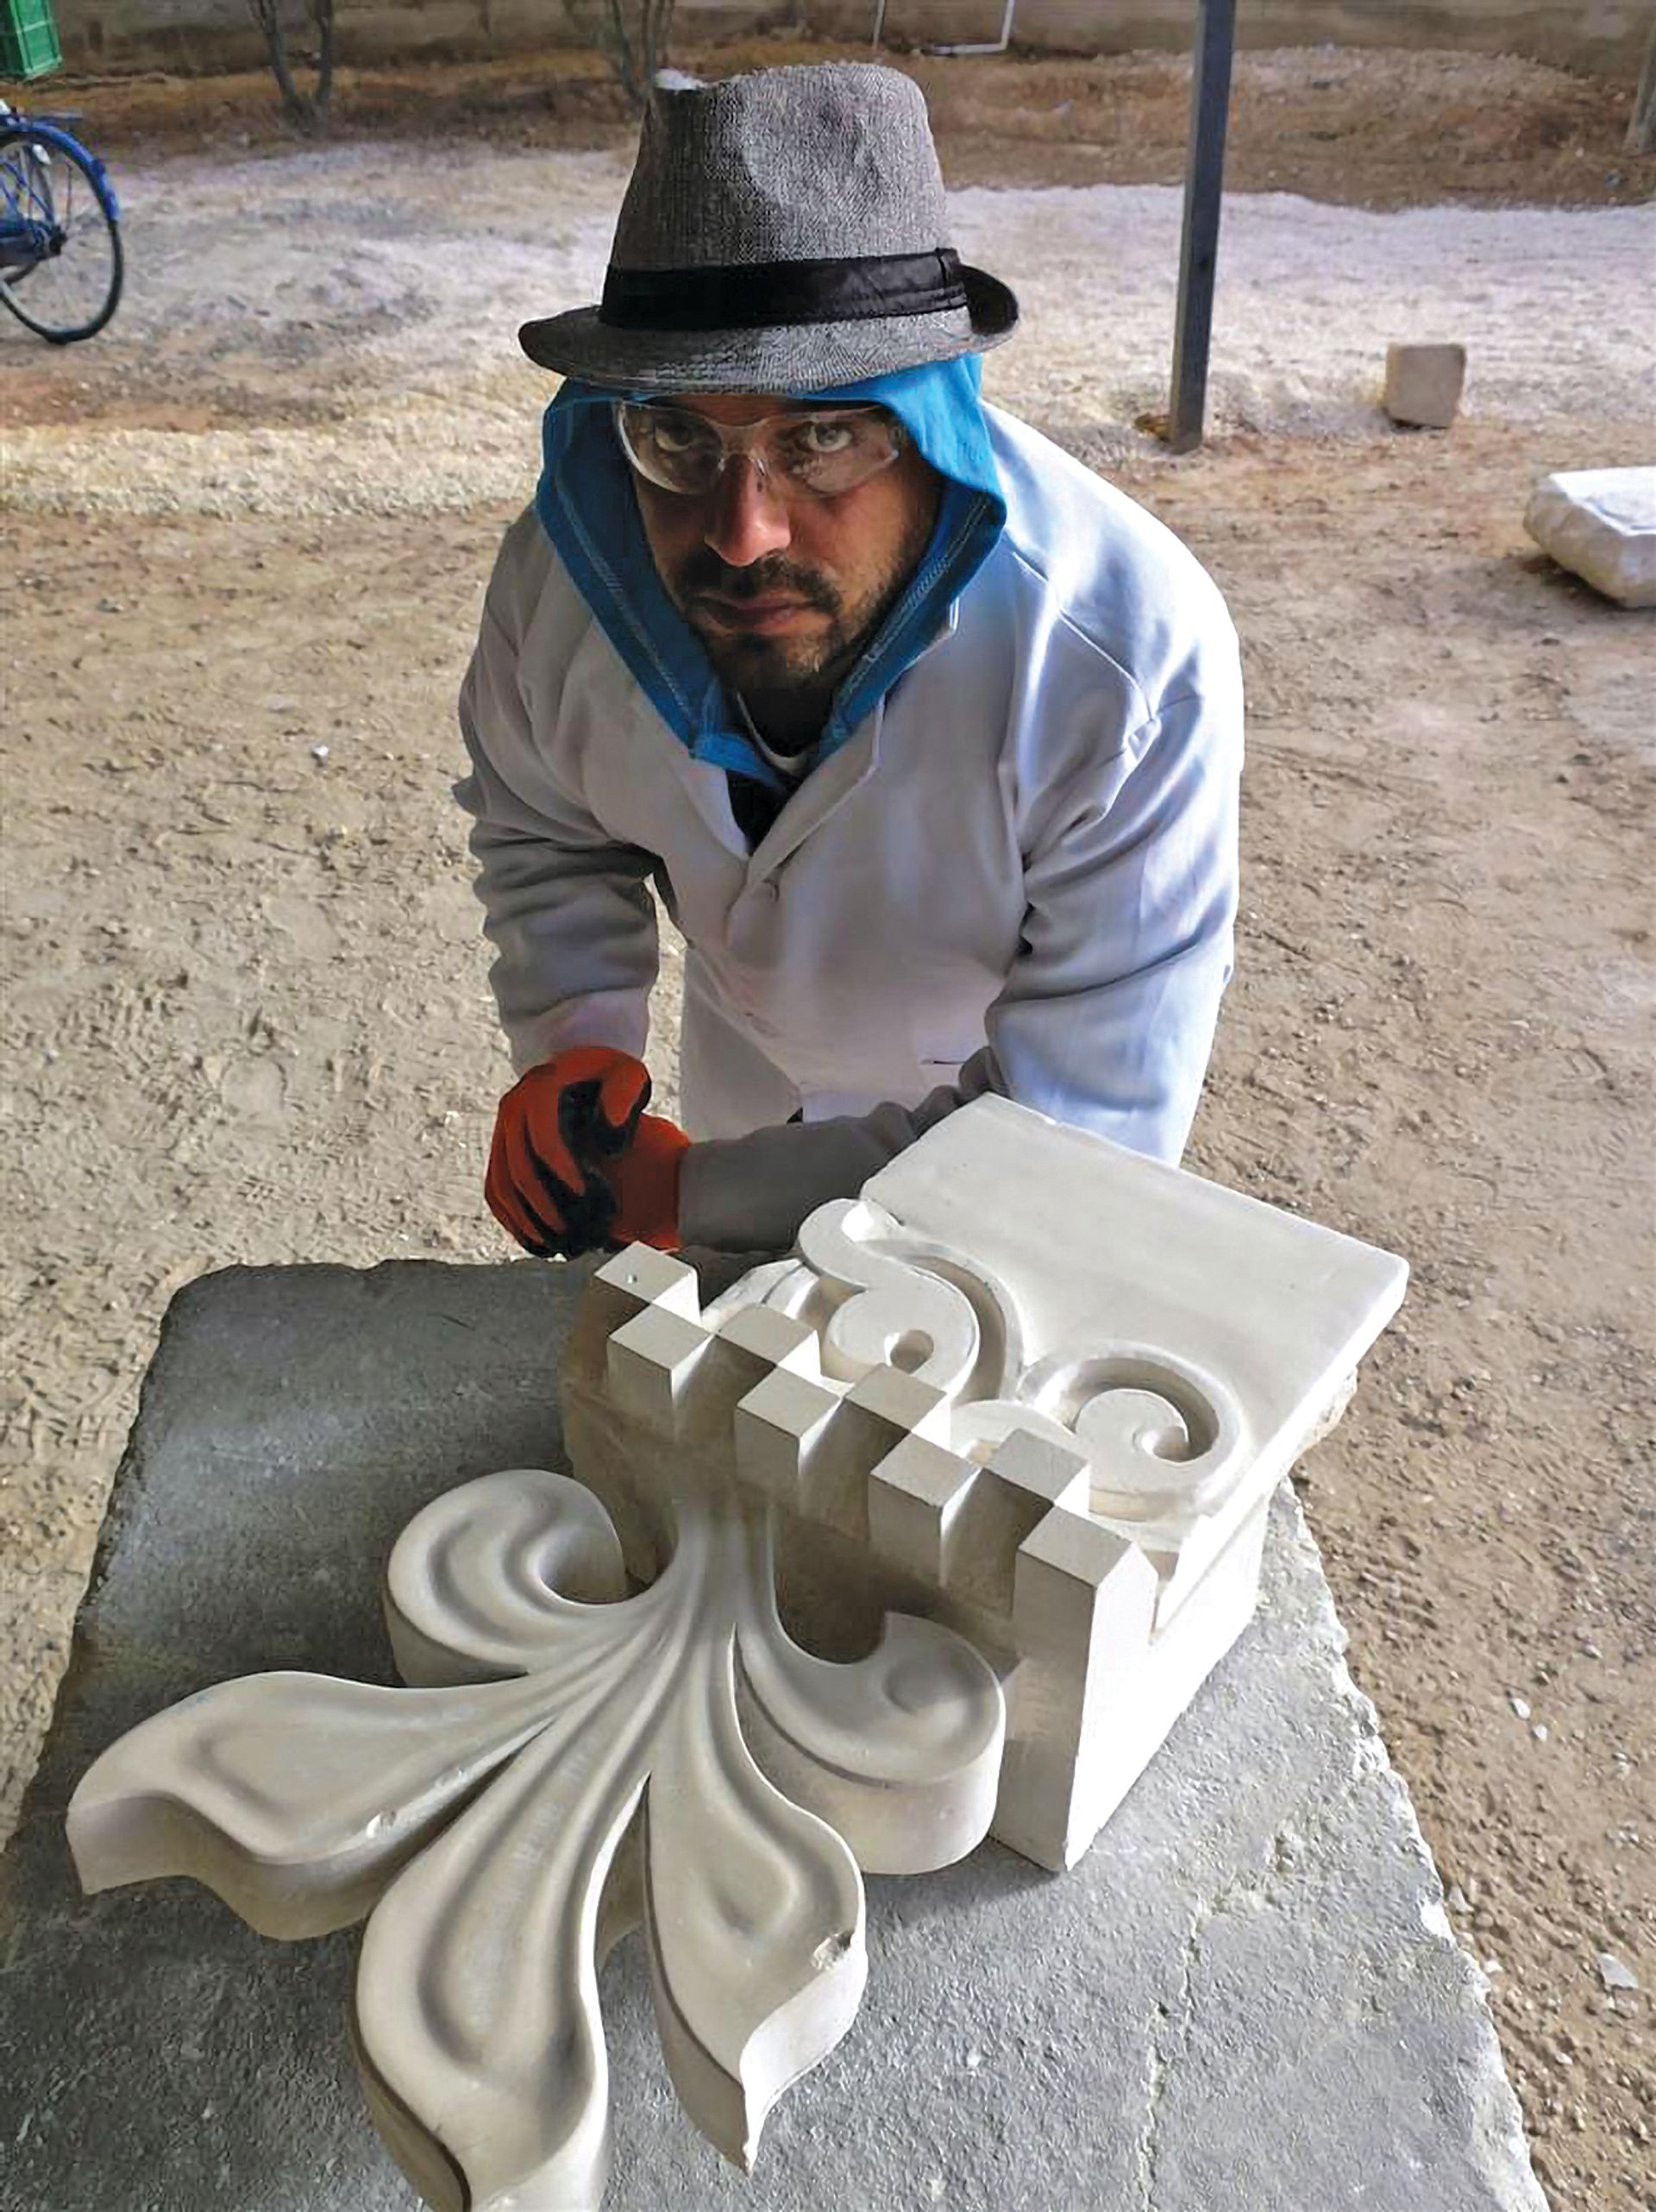 The World Monuments Fund has opened a centre in Jordan that trains refugees in conservation stonemasonry